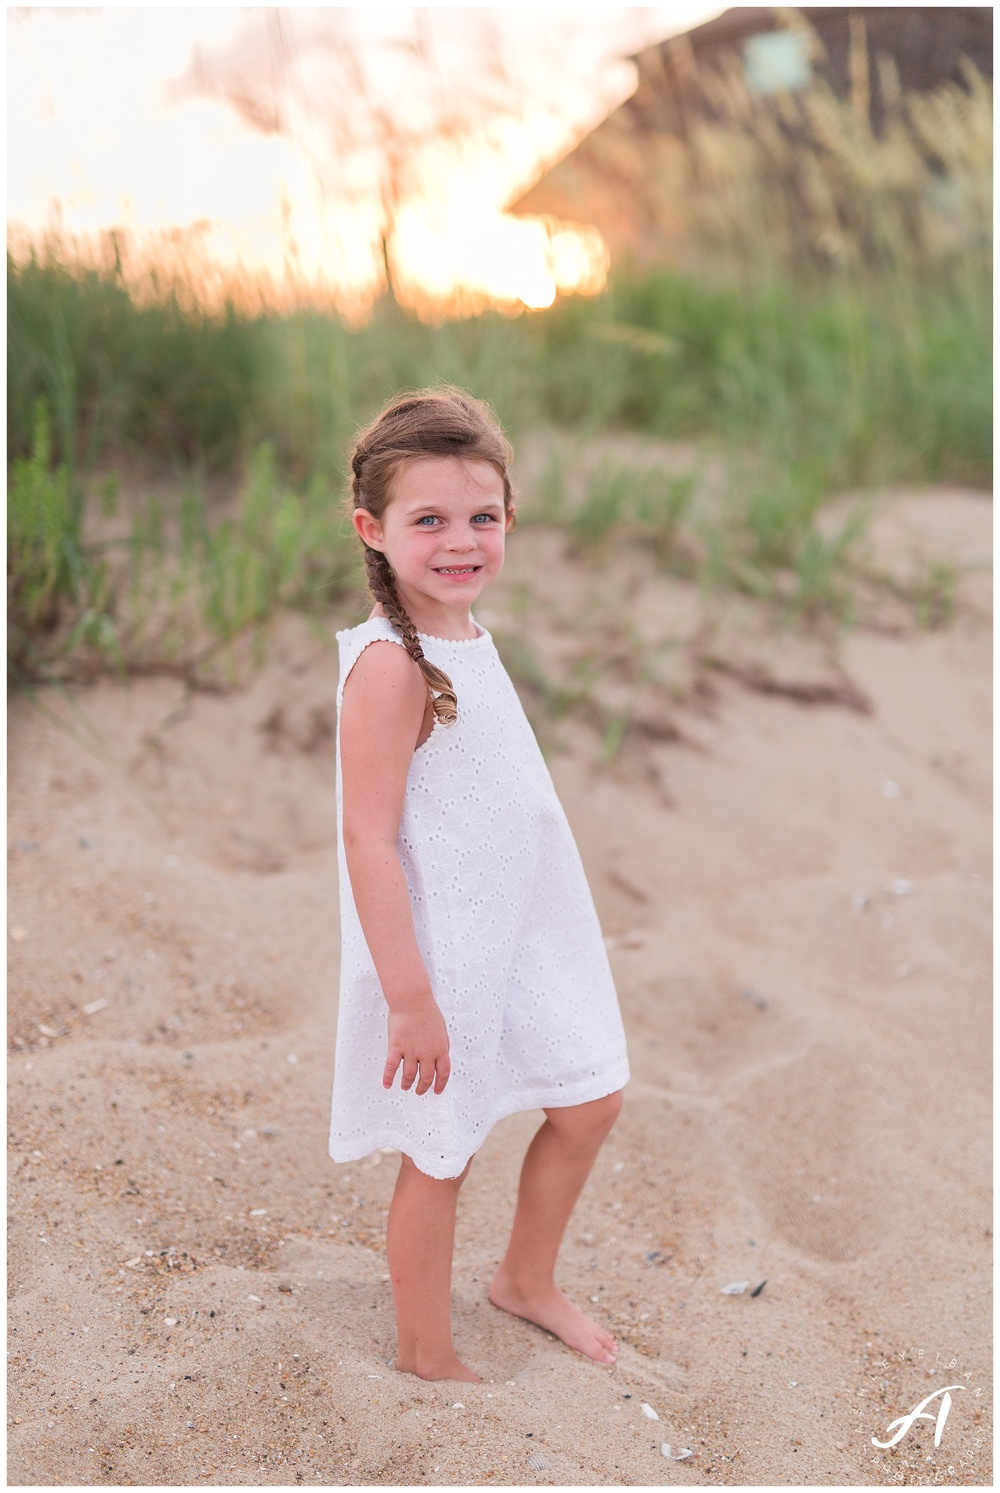 Outer Banks Photographer || Sunset Beach Photographer || Ashley Eiban Photography || www.ashleyeiban.com